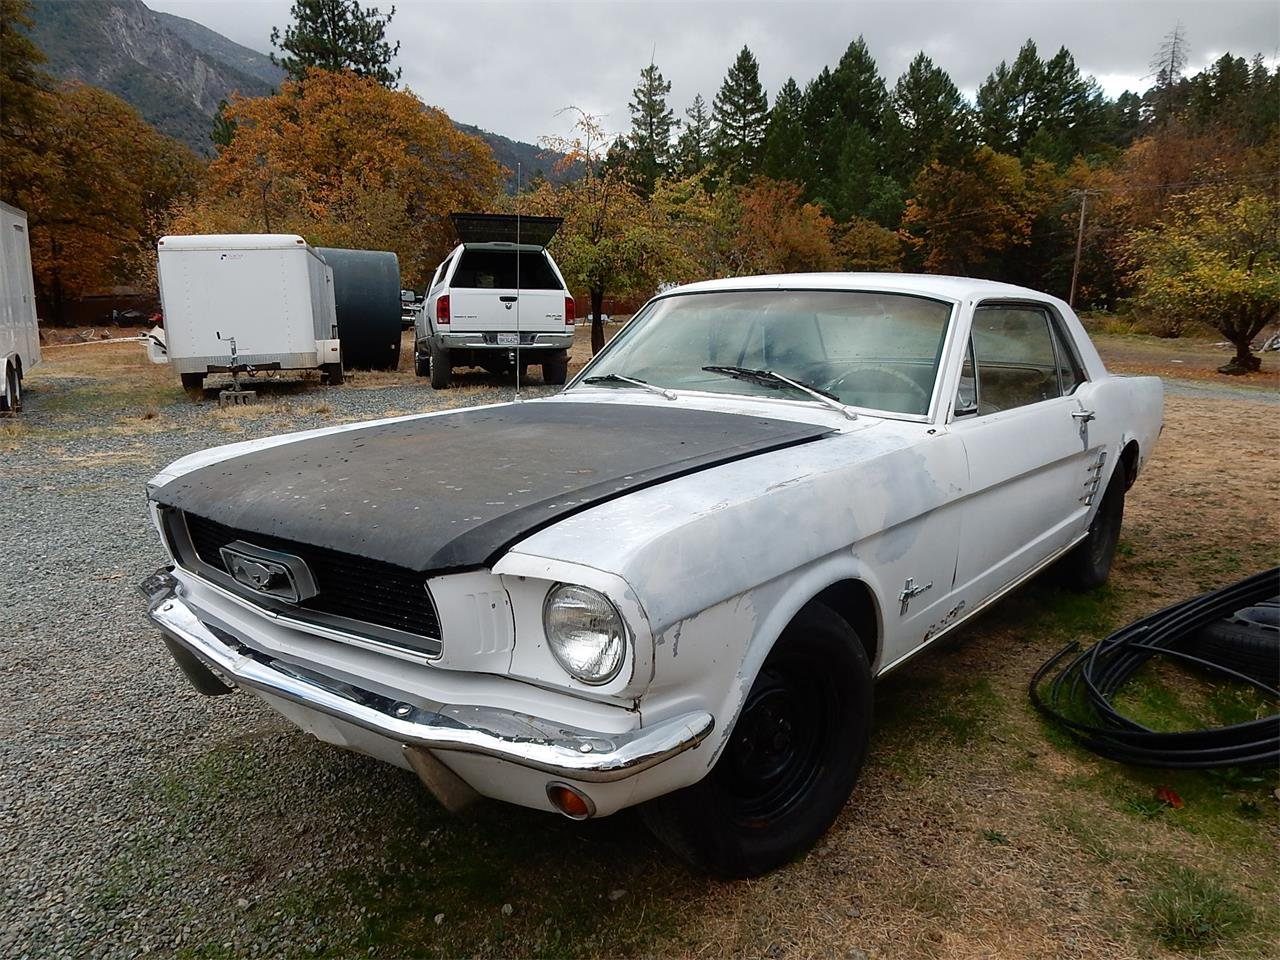 Large Picture of Classic '65 Mustang - $3,500.00 Offered by a Private Seller - OTG6